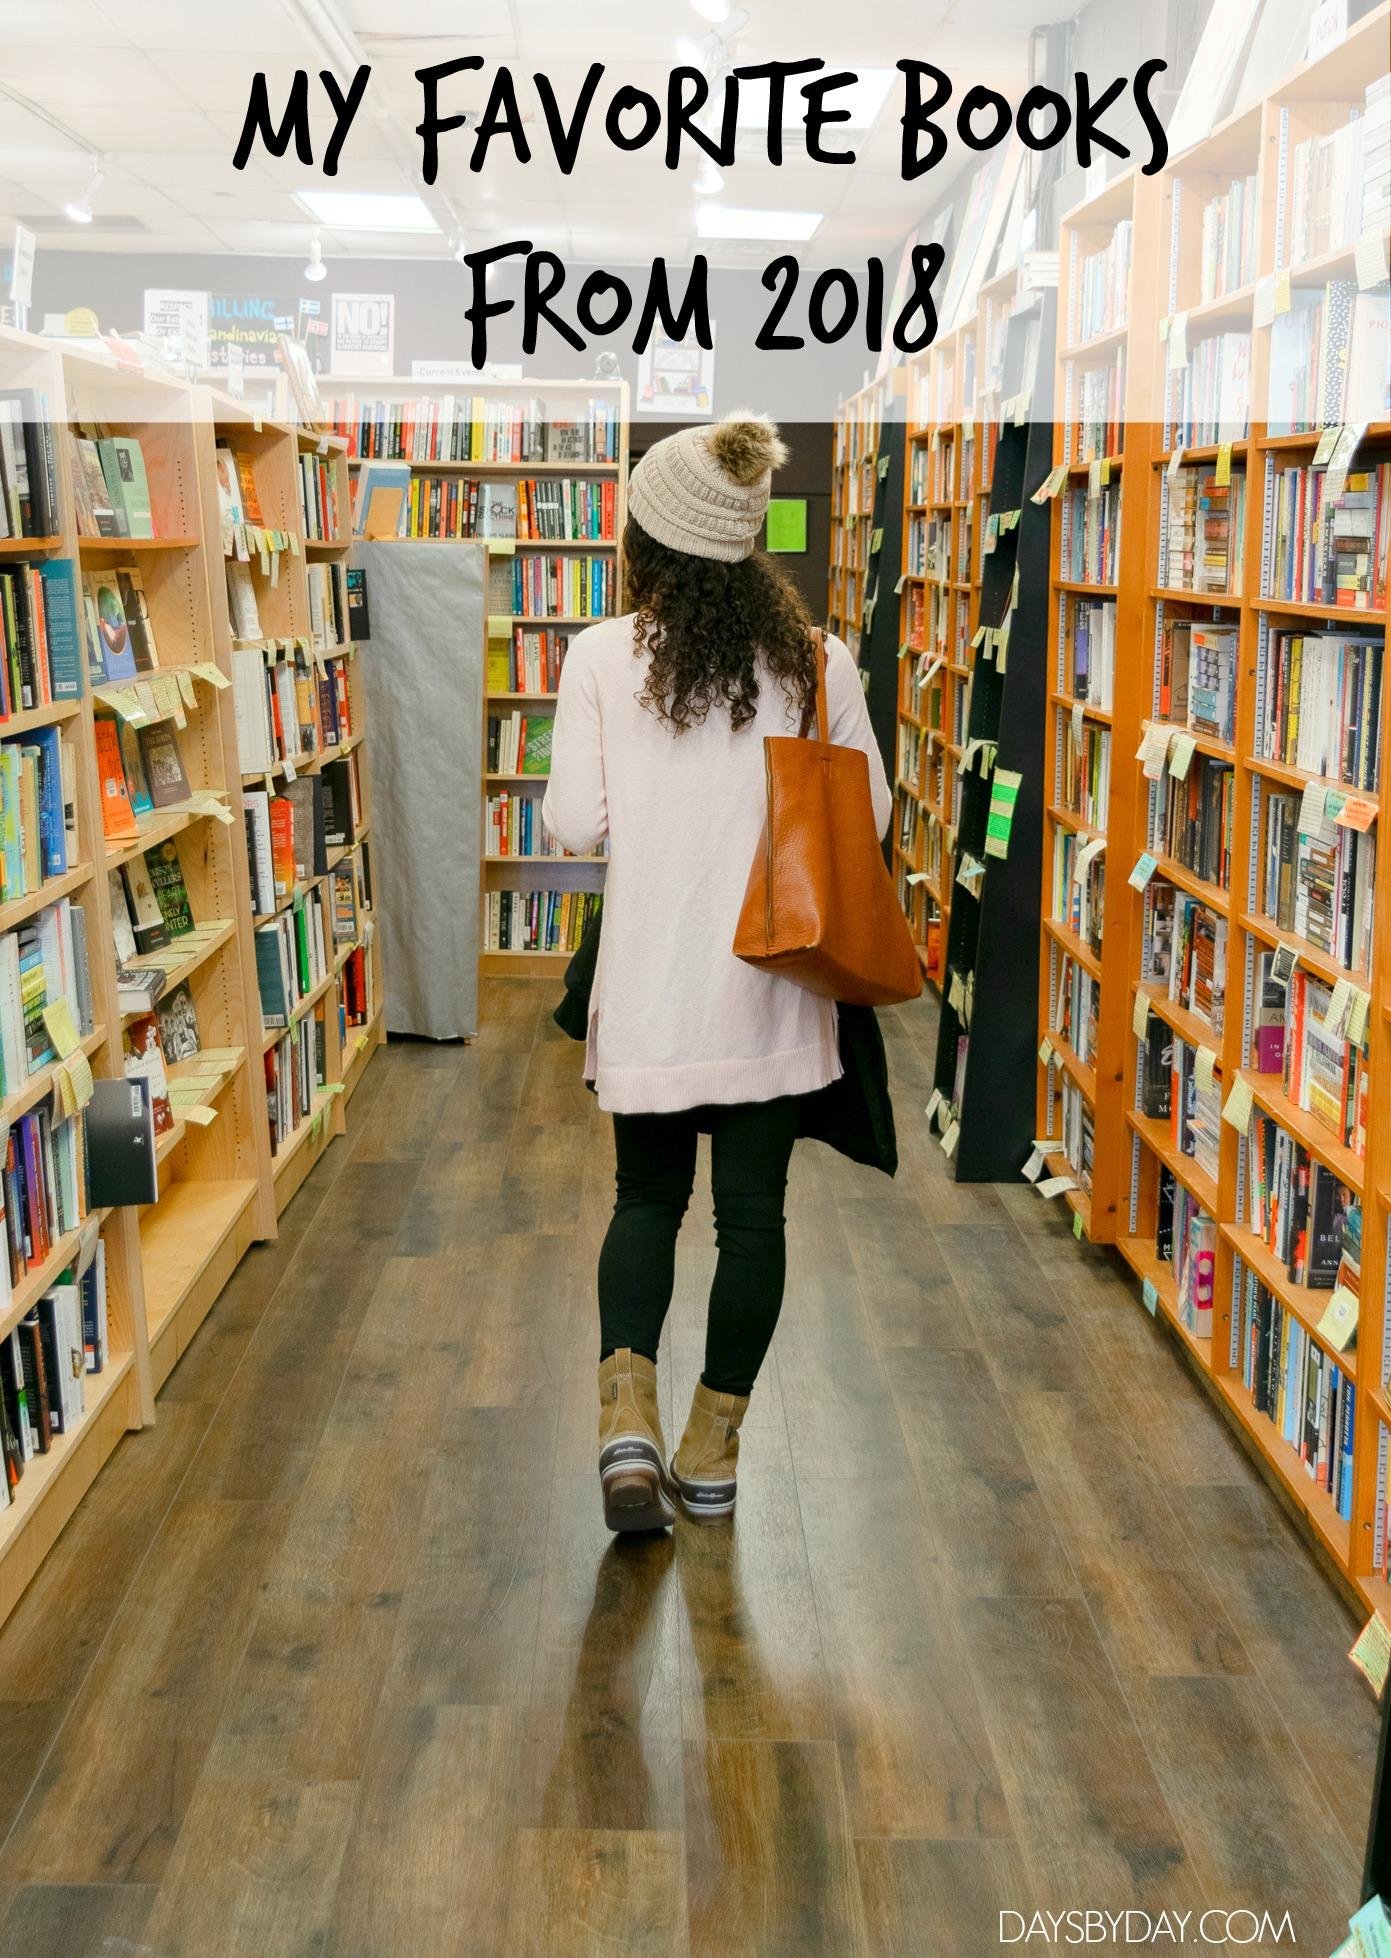 My Favorite Books from 2018